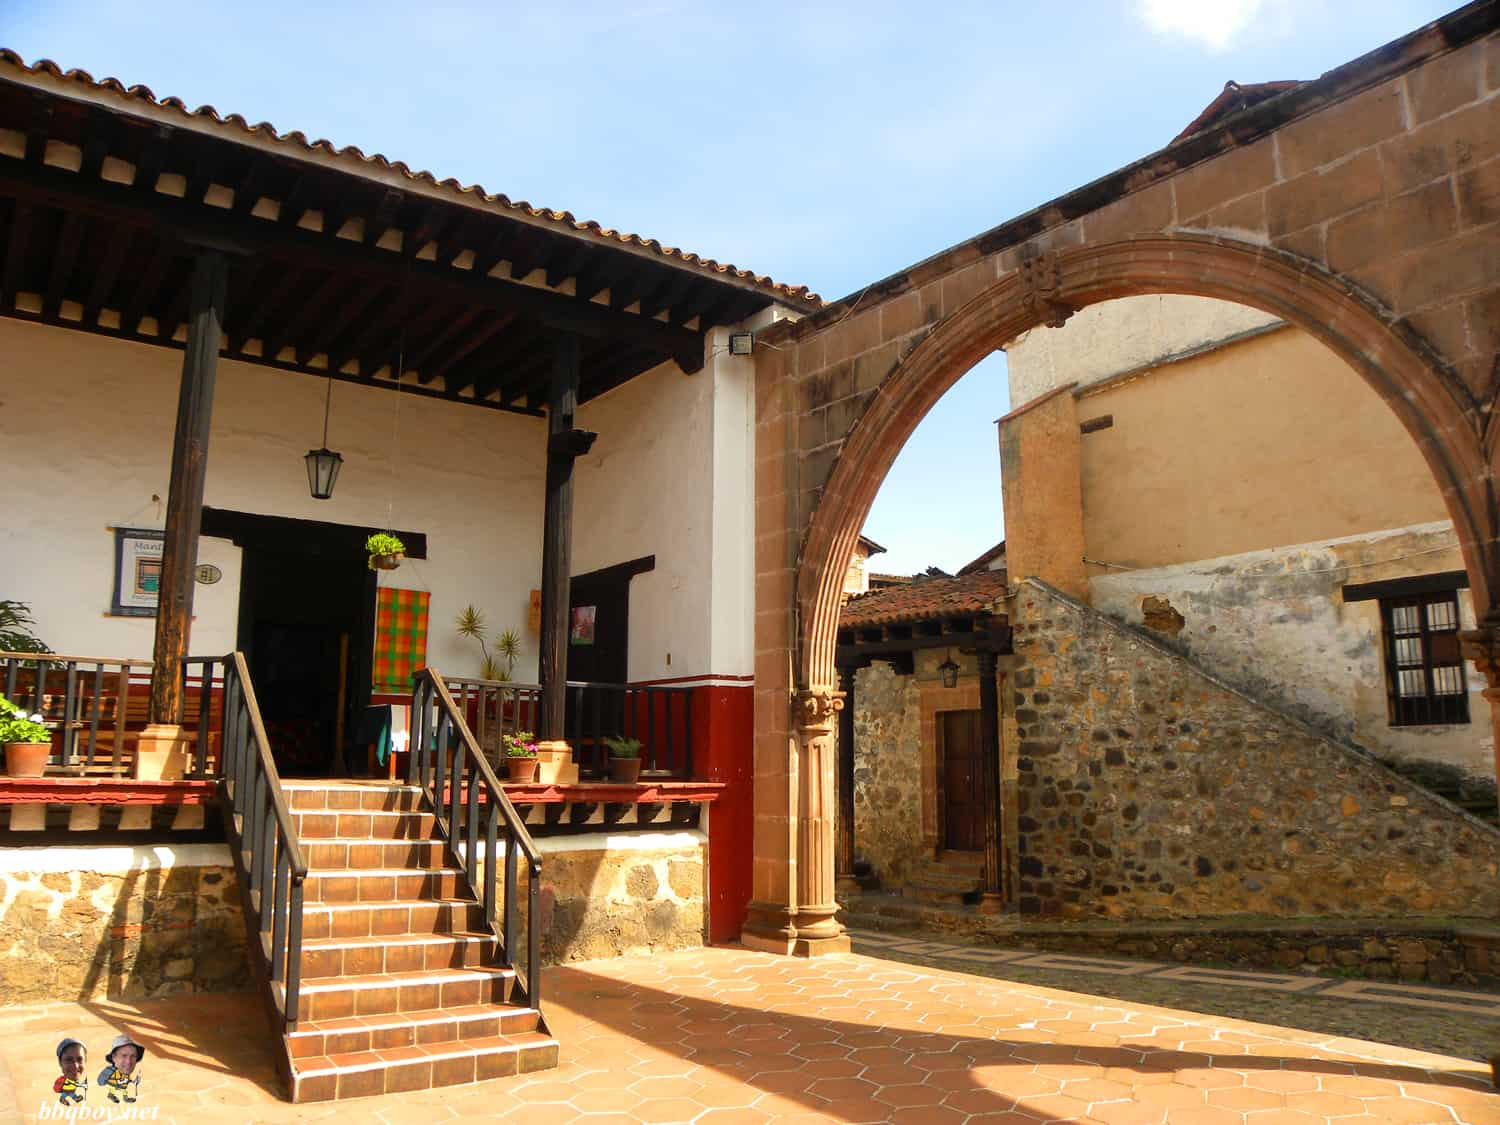 House of Eleven Patios (Casa de los Once Patios), Patzcuaro 3